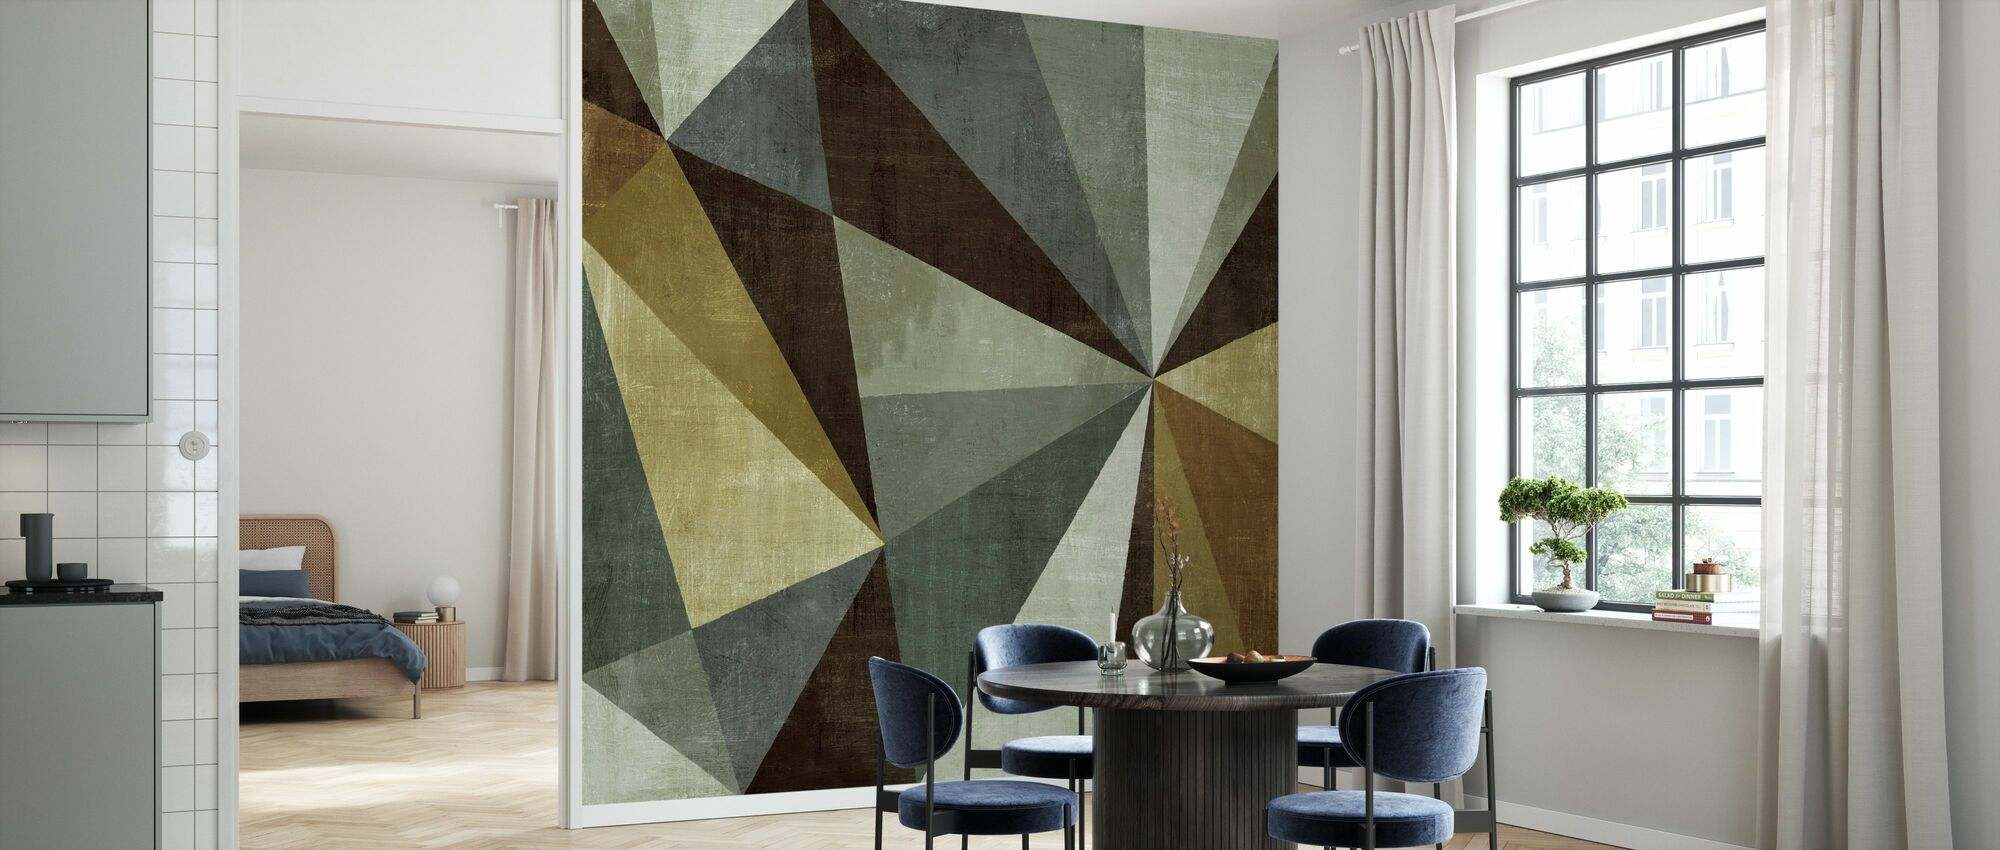 Triangulawesome - Wallpaper - Kitchen